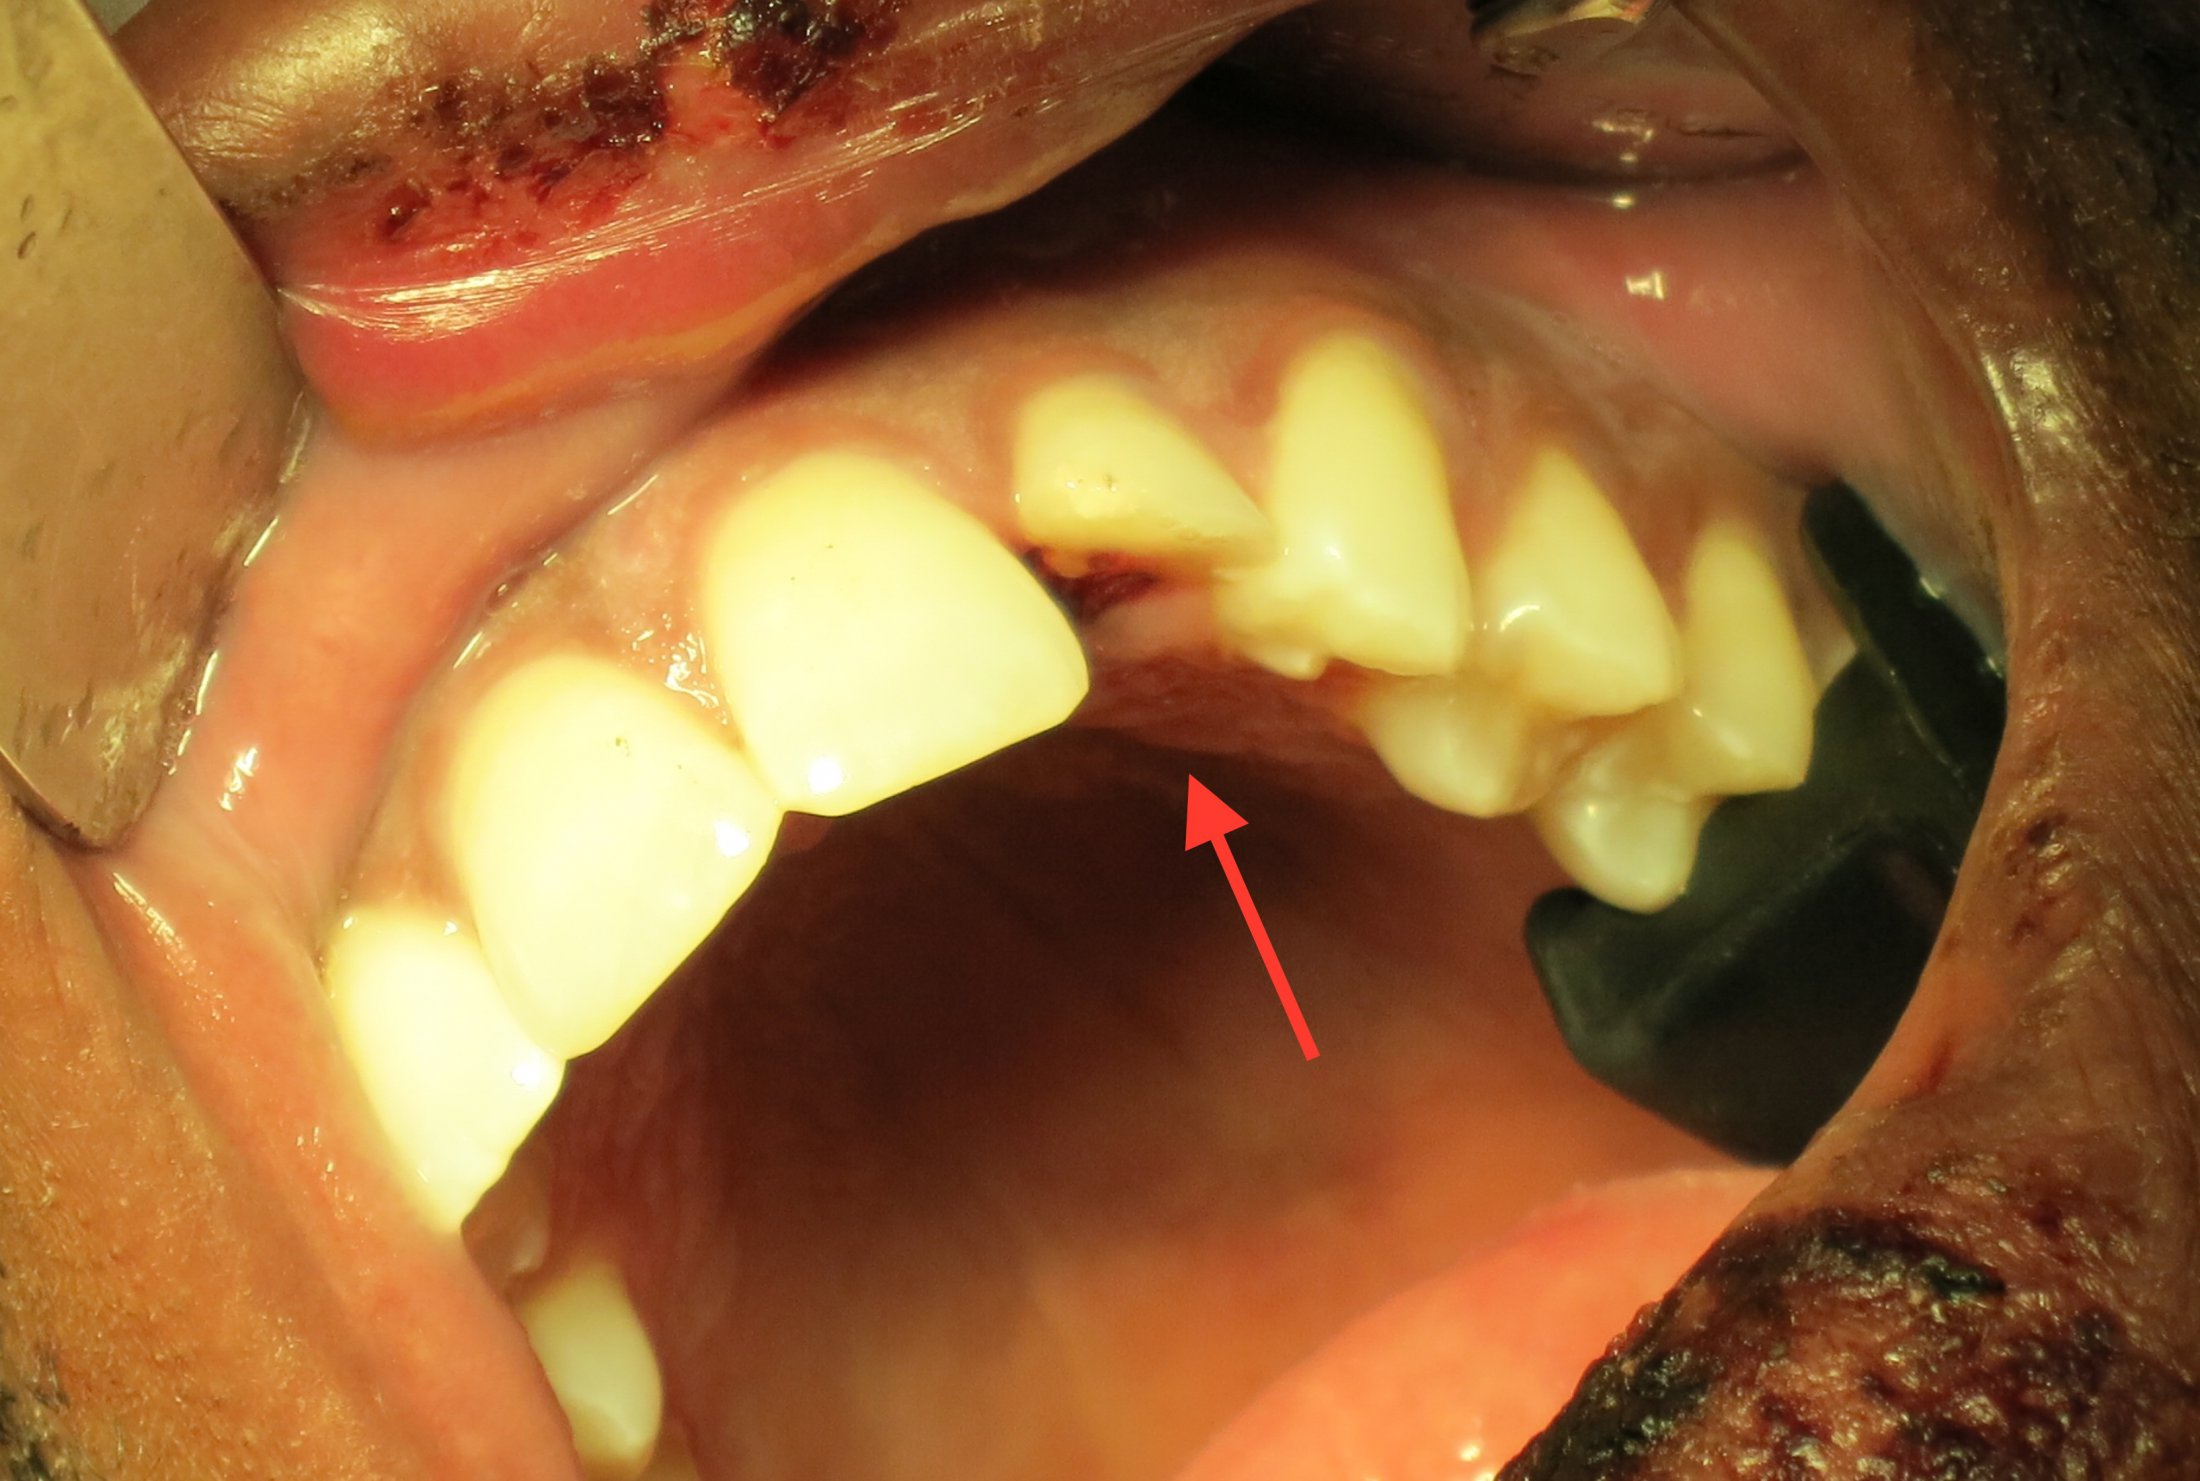 Tooth Trauma Complicated Crown Root Fracture What Now